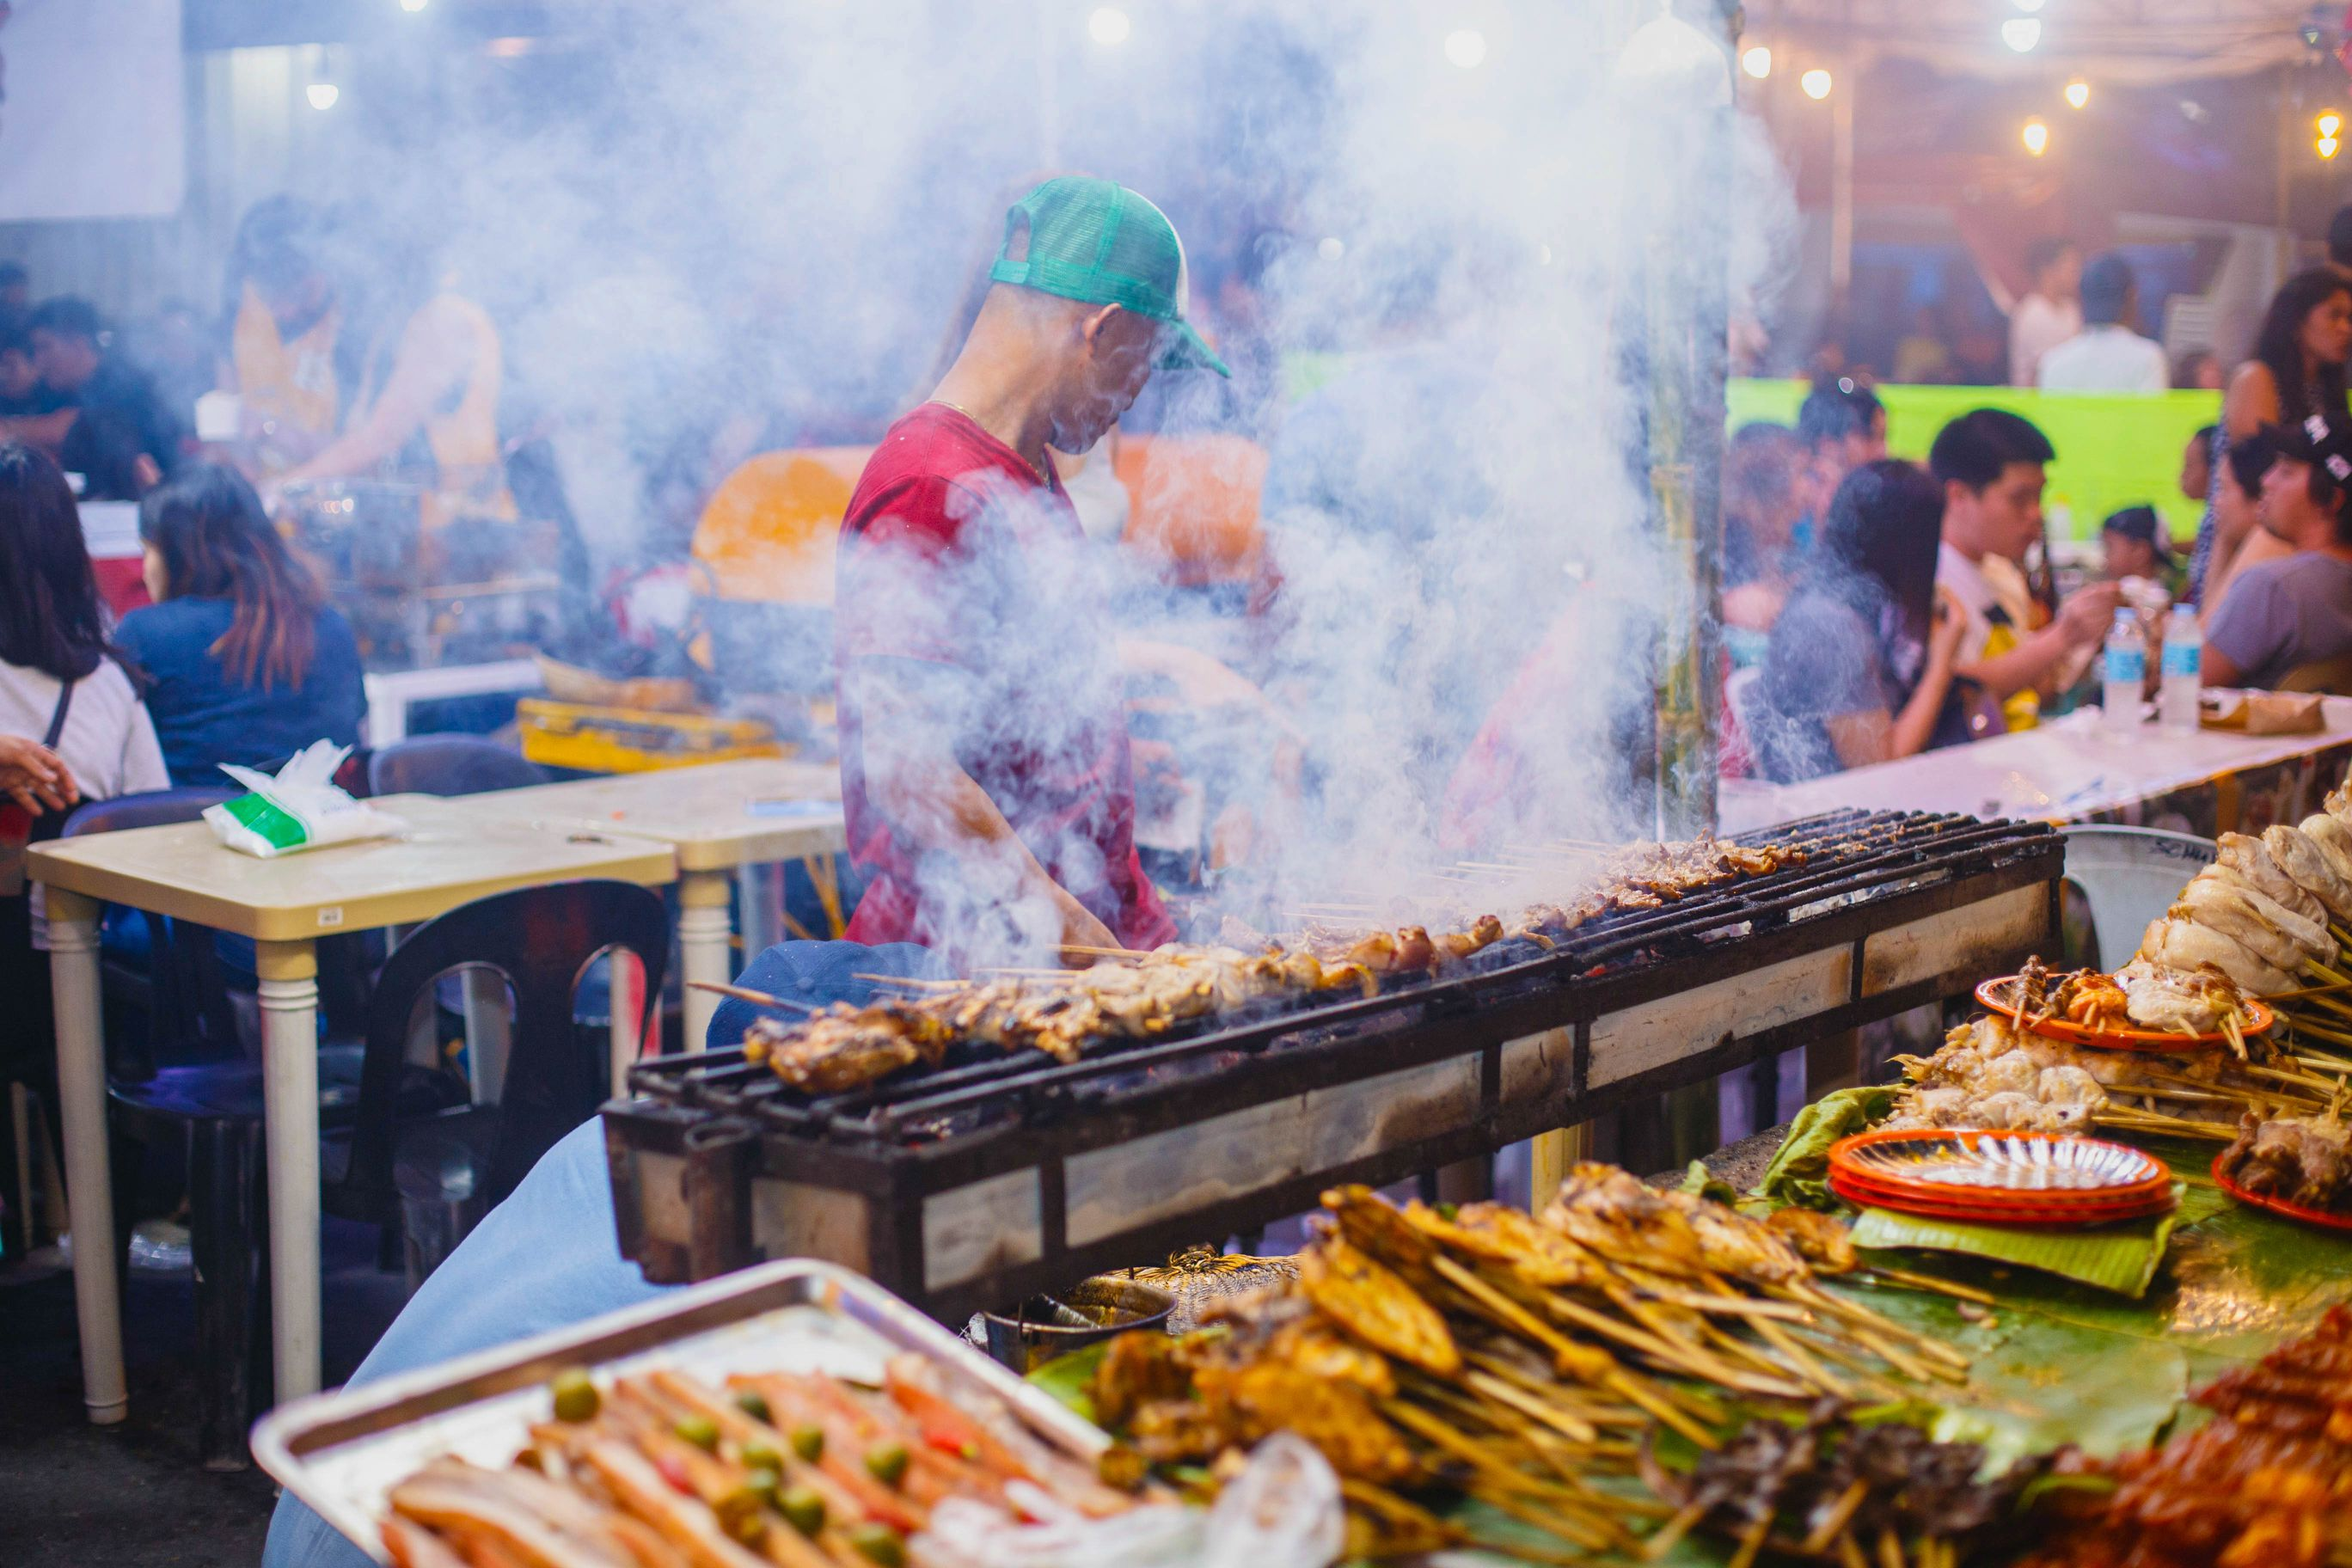 Man grilling skewered food a street food stall